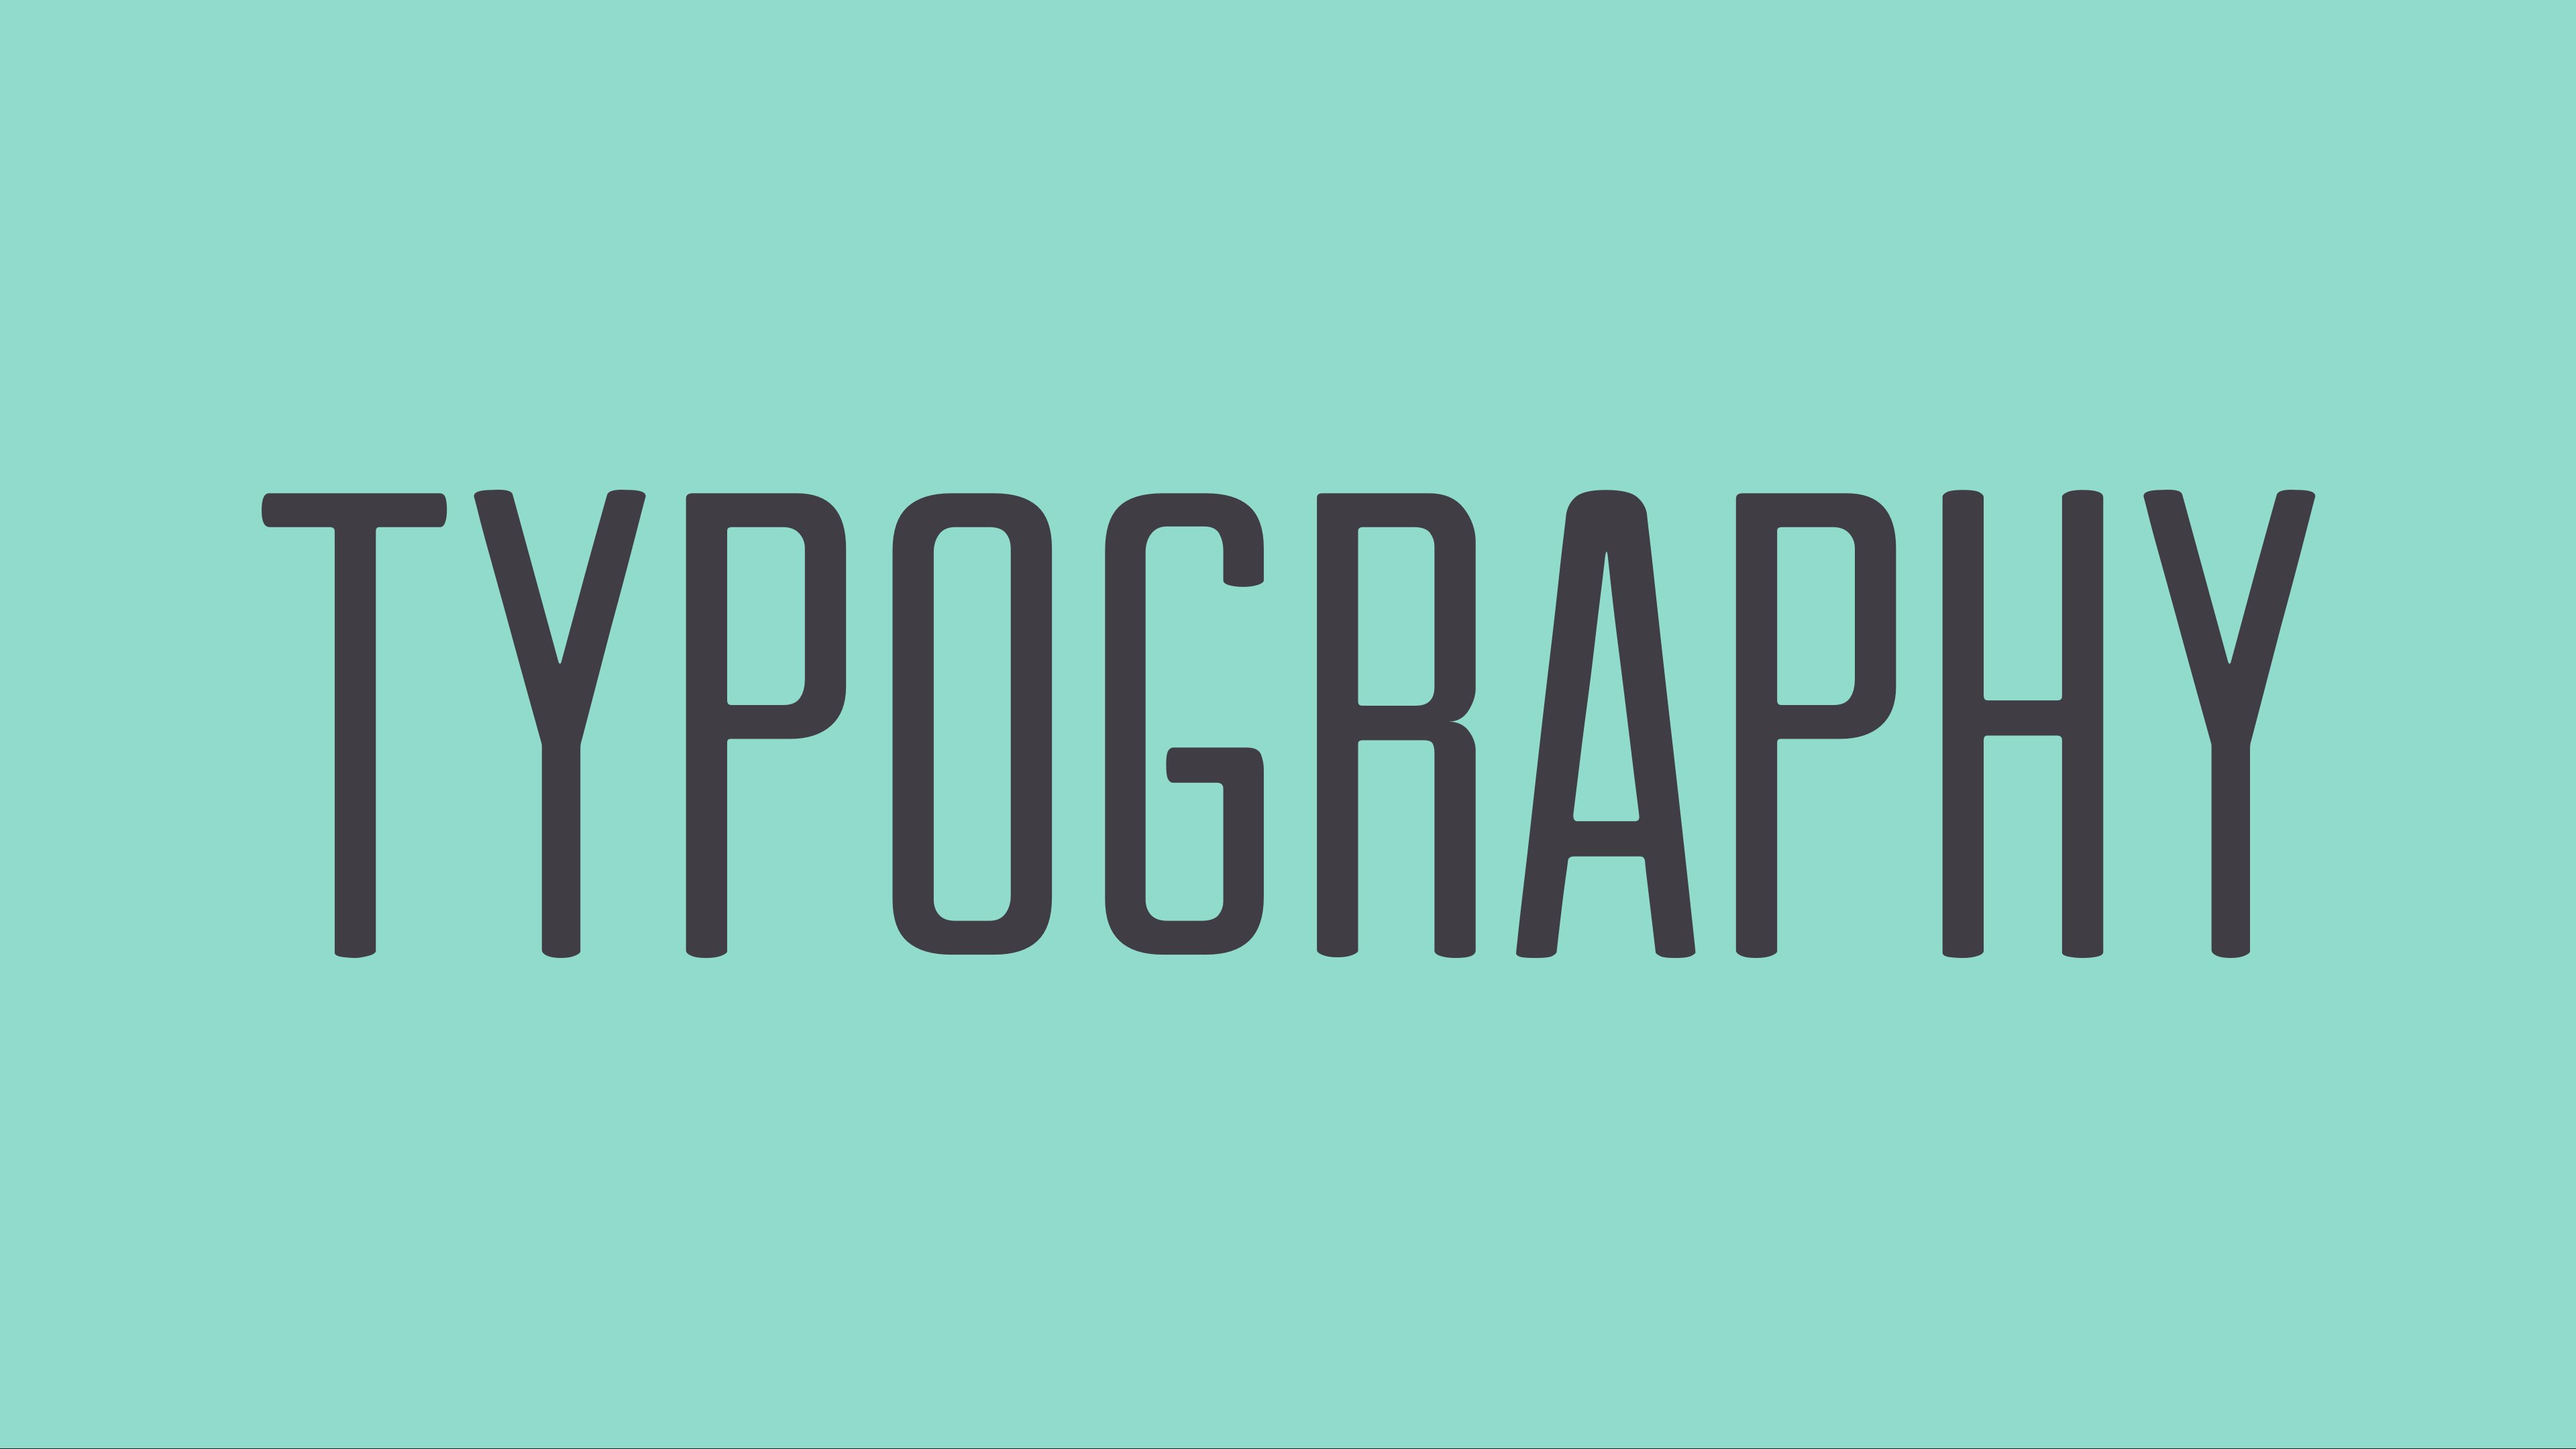 All that typography does for your website